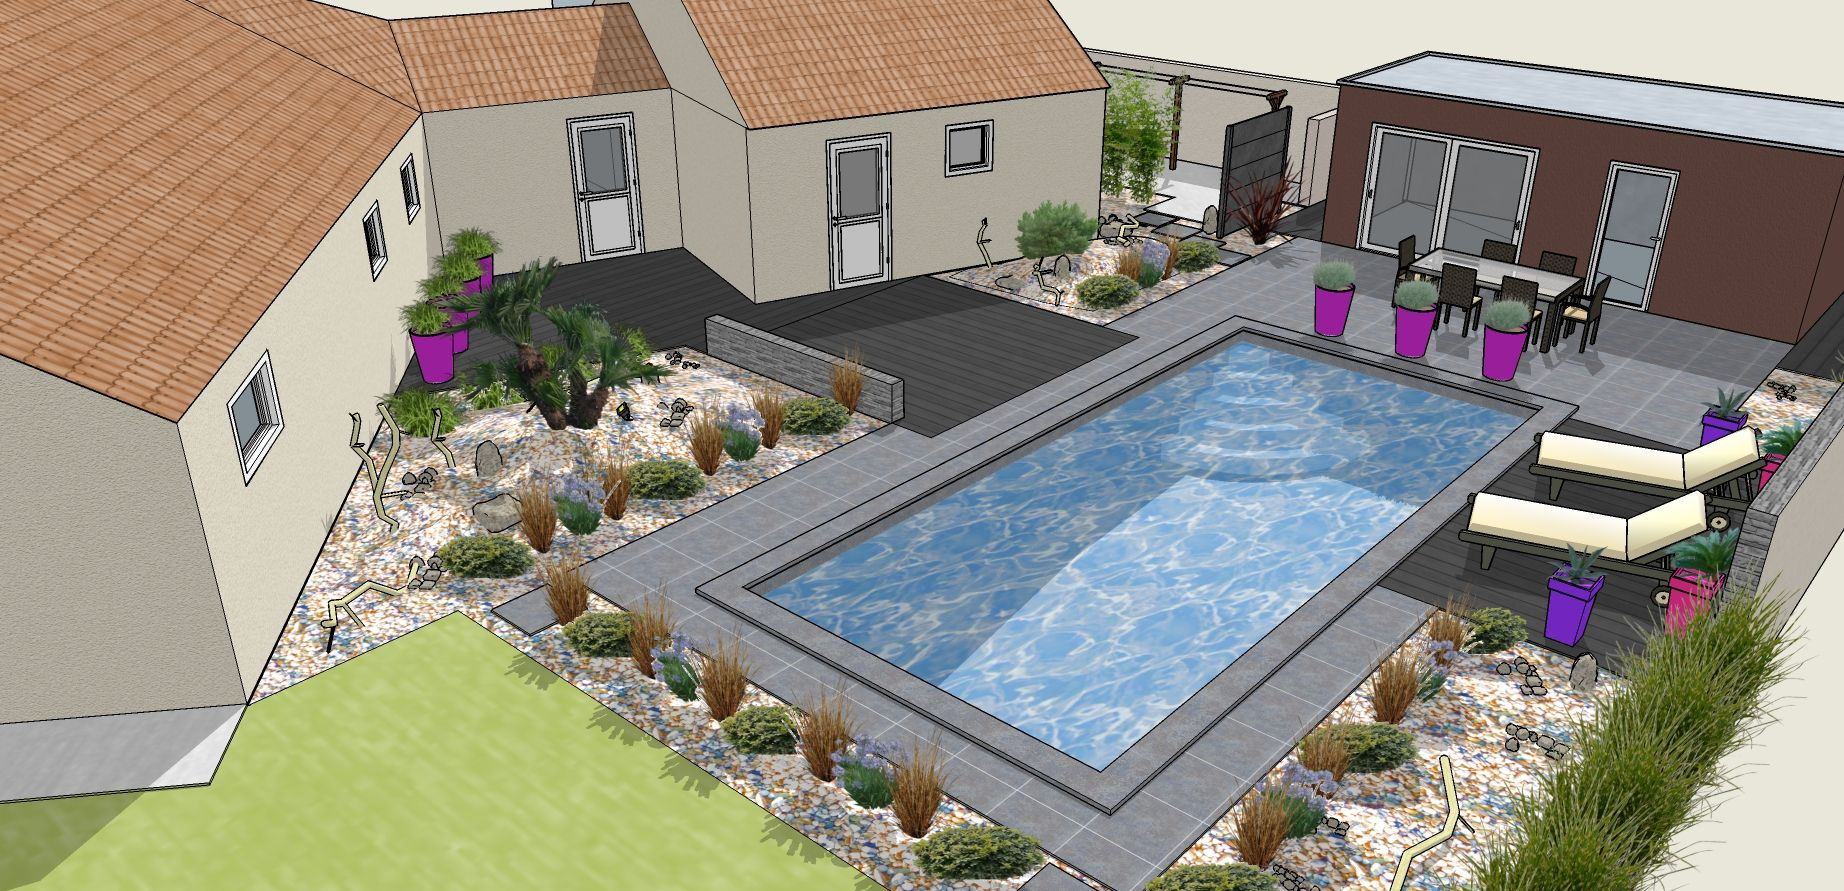 Am nagement paysager piscine creus e contemporain recherche google pour la londe pinterest for Amenagement contemporain